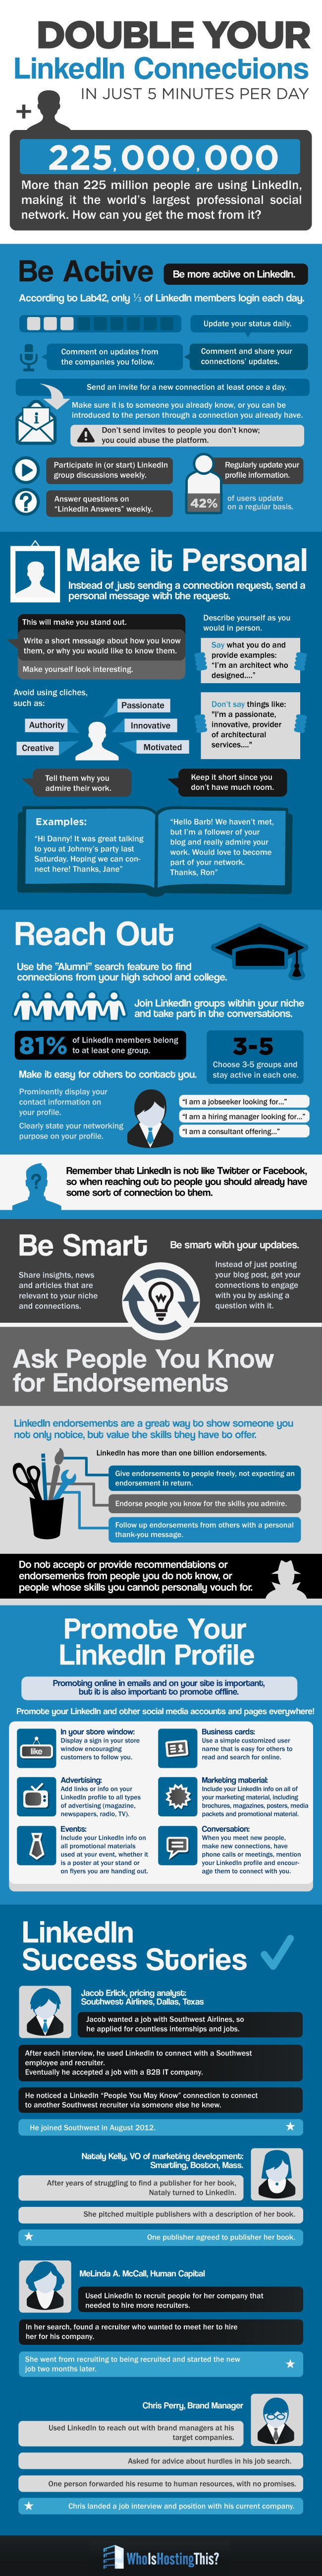 Double Your LinkedIn Connections